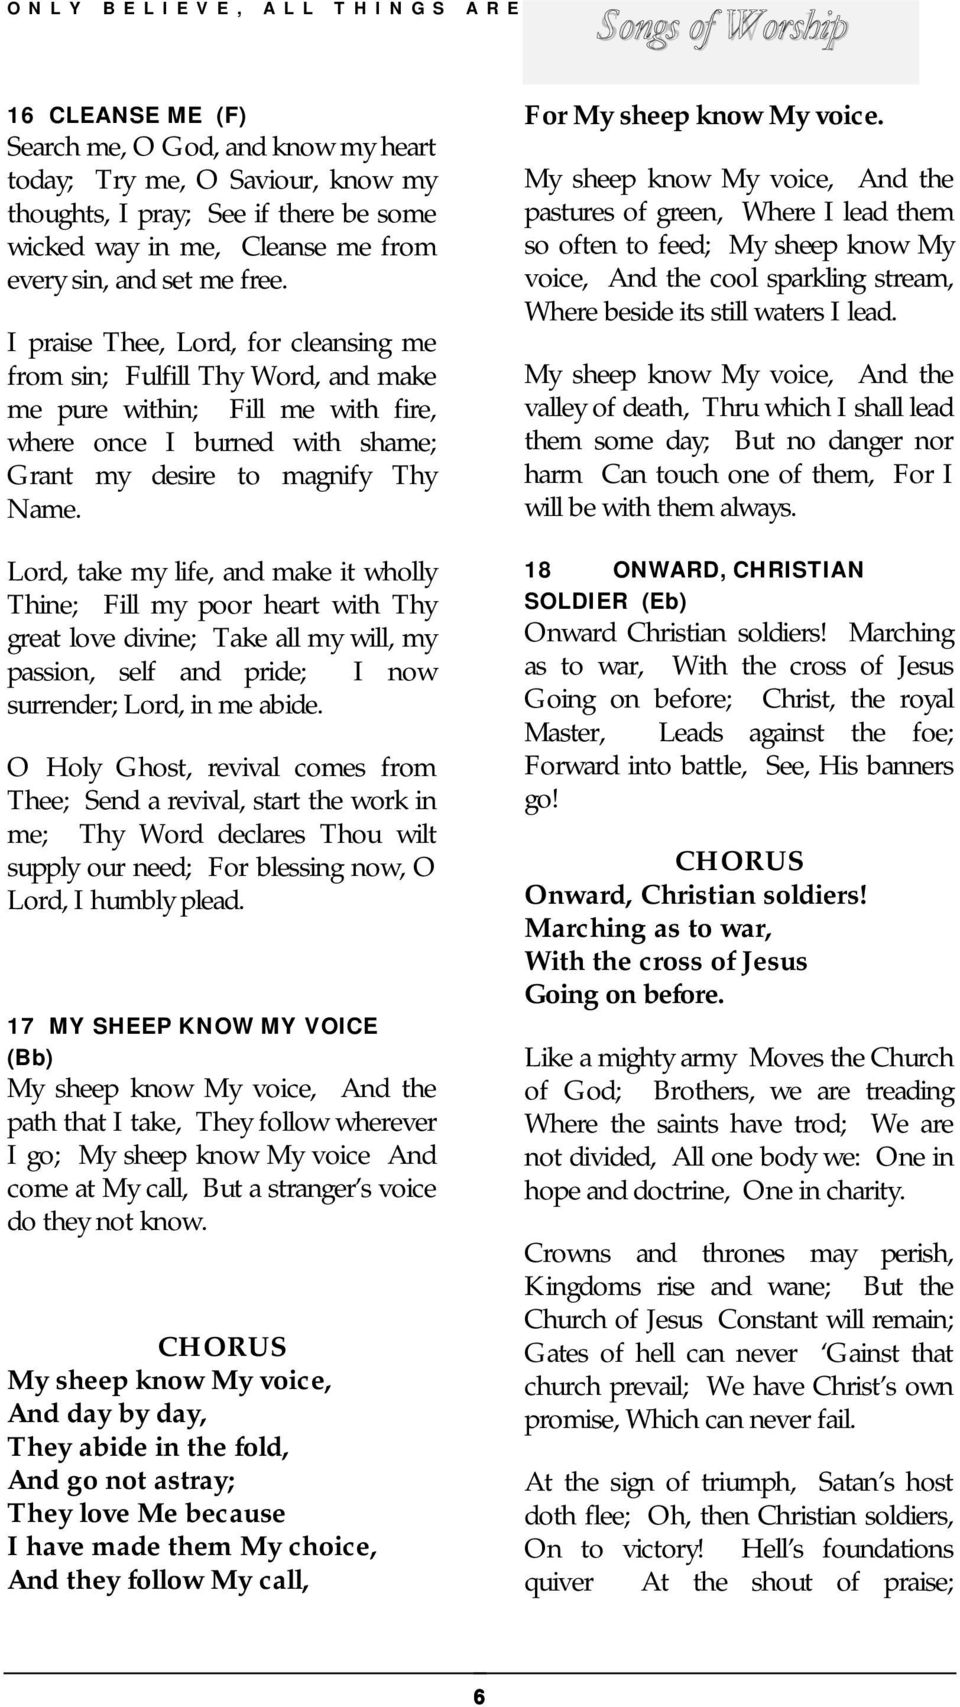 SONGS OF WORSHIP  Sung by William Marrion Branham  Only Believe - PDF